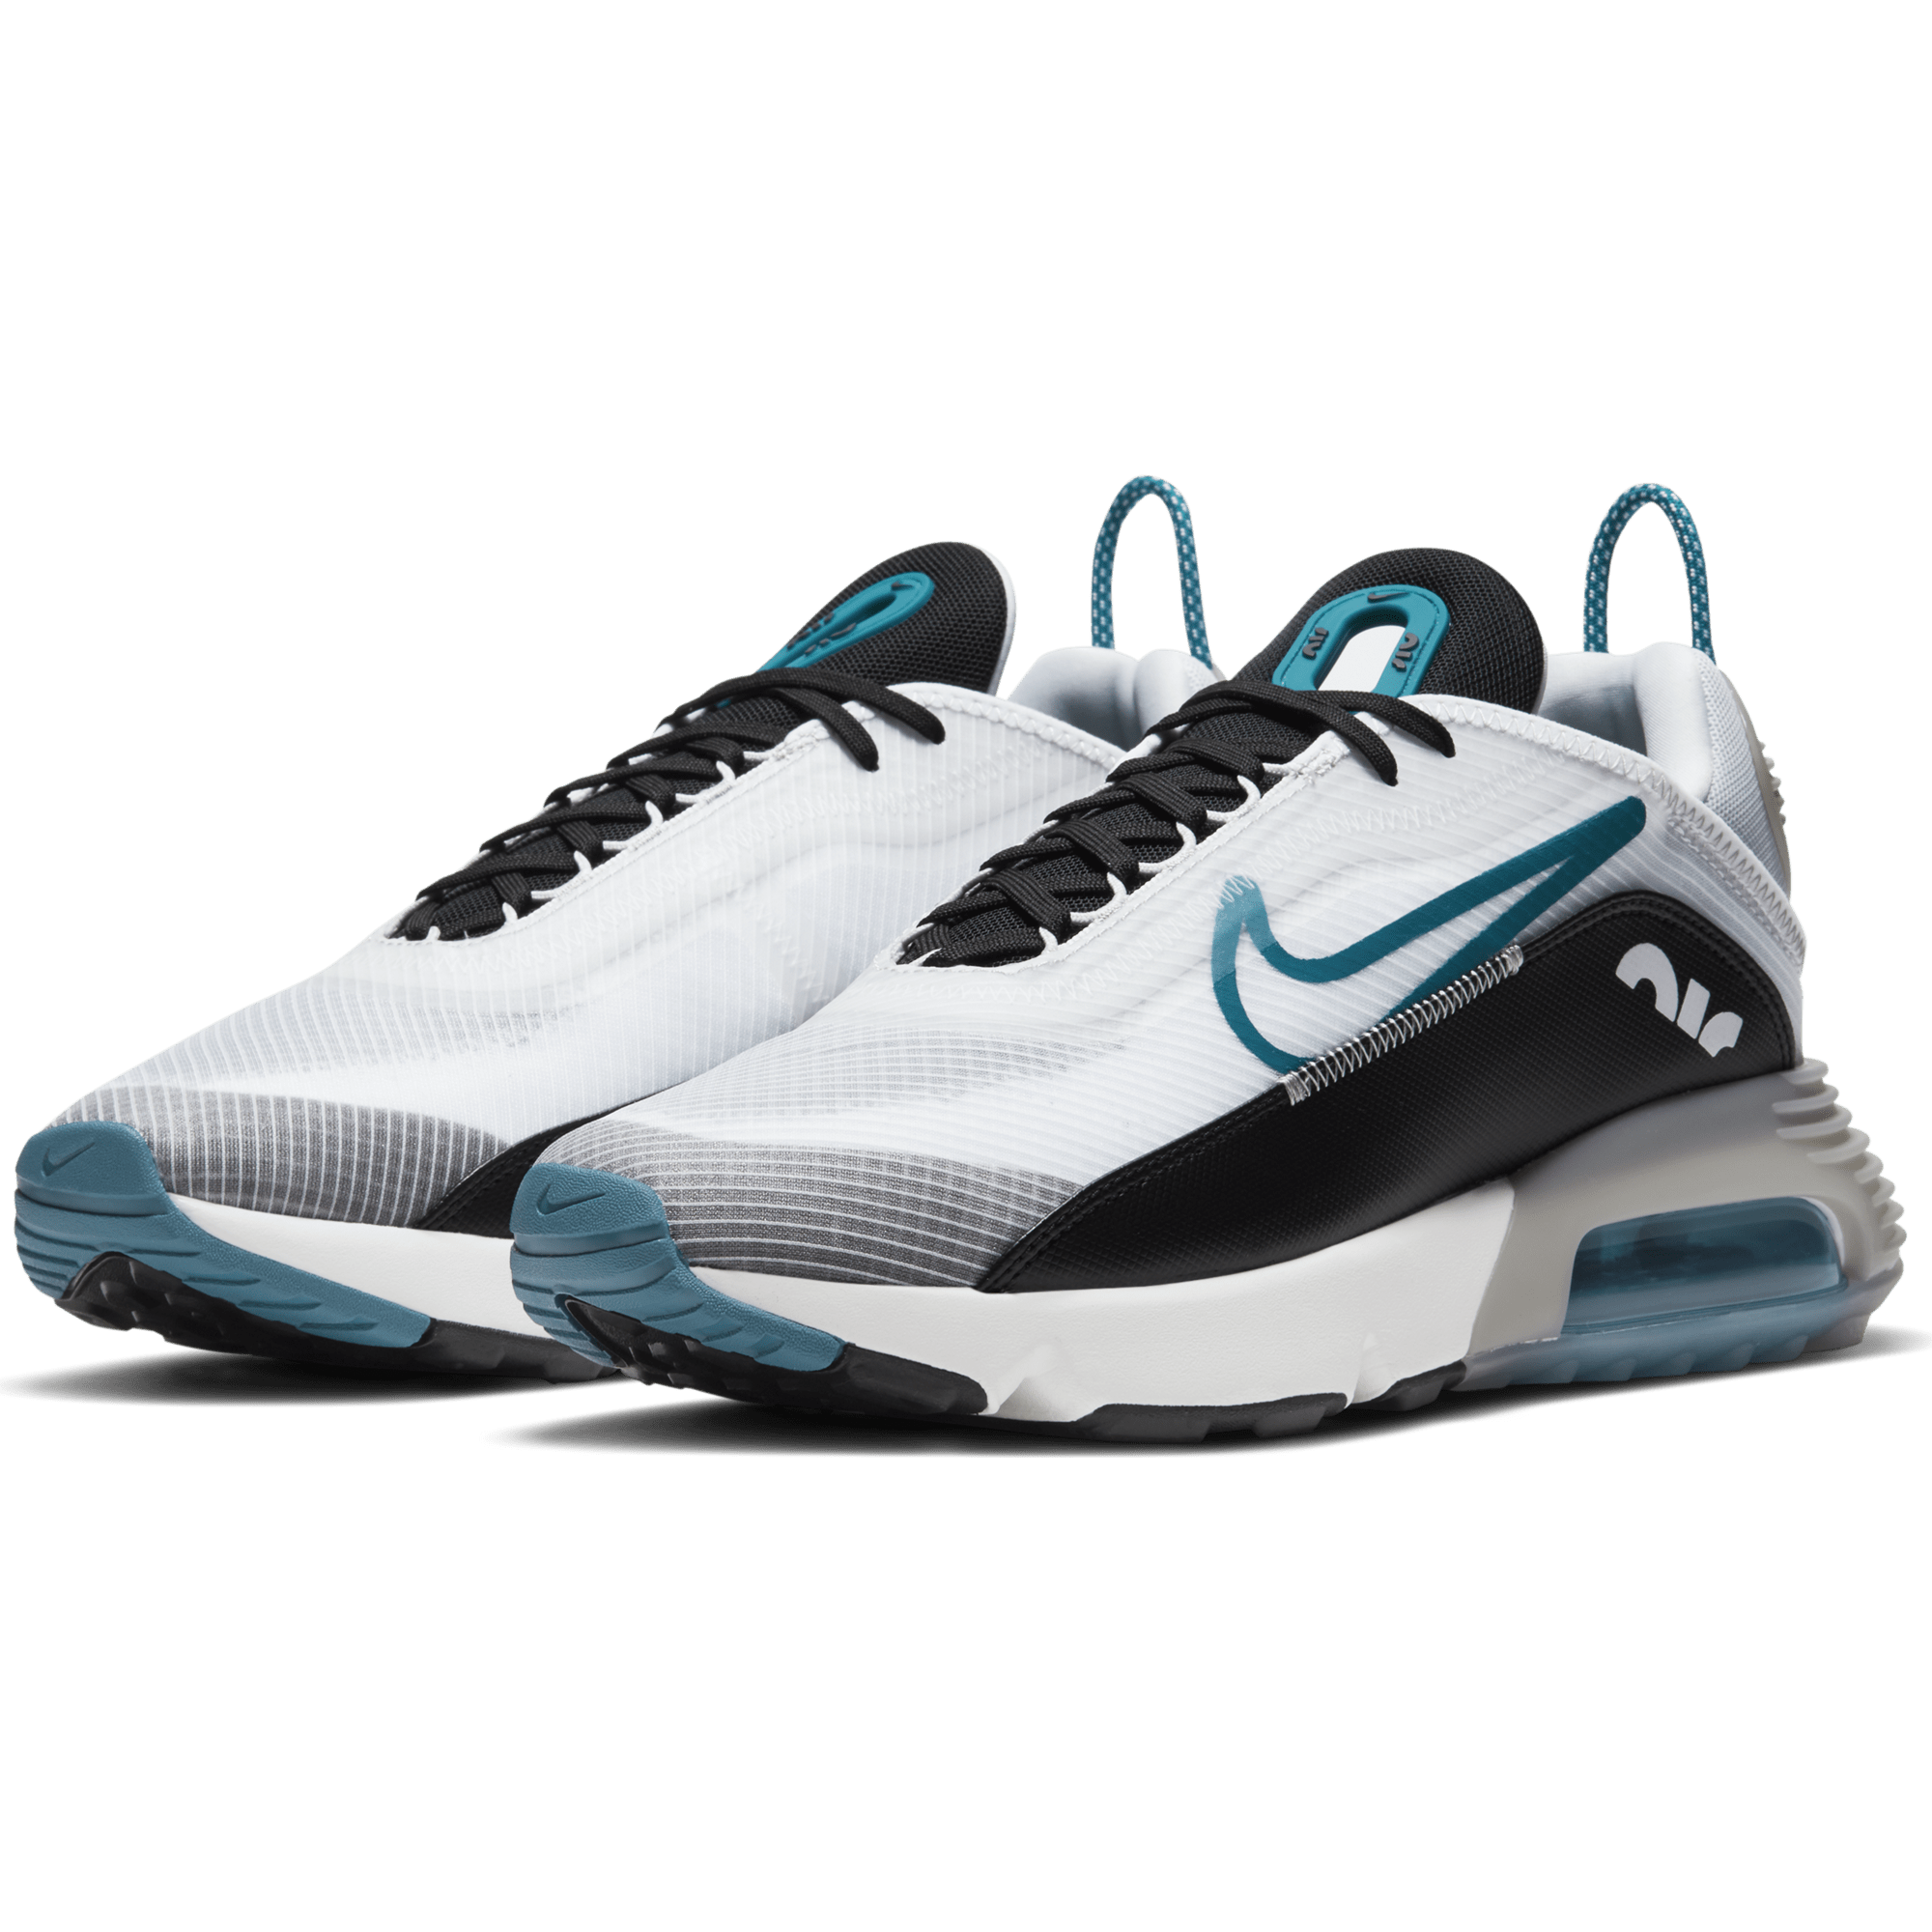 Nike FOOTWEAR Nike Air Max 2090 - Men's